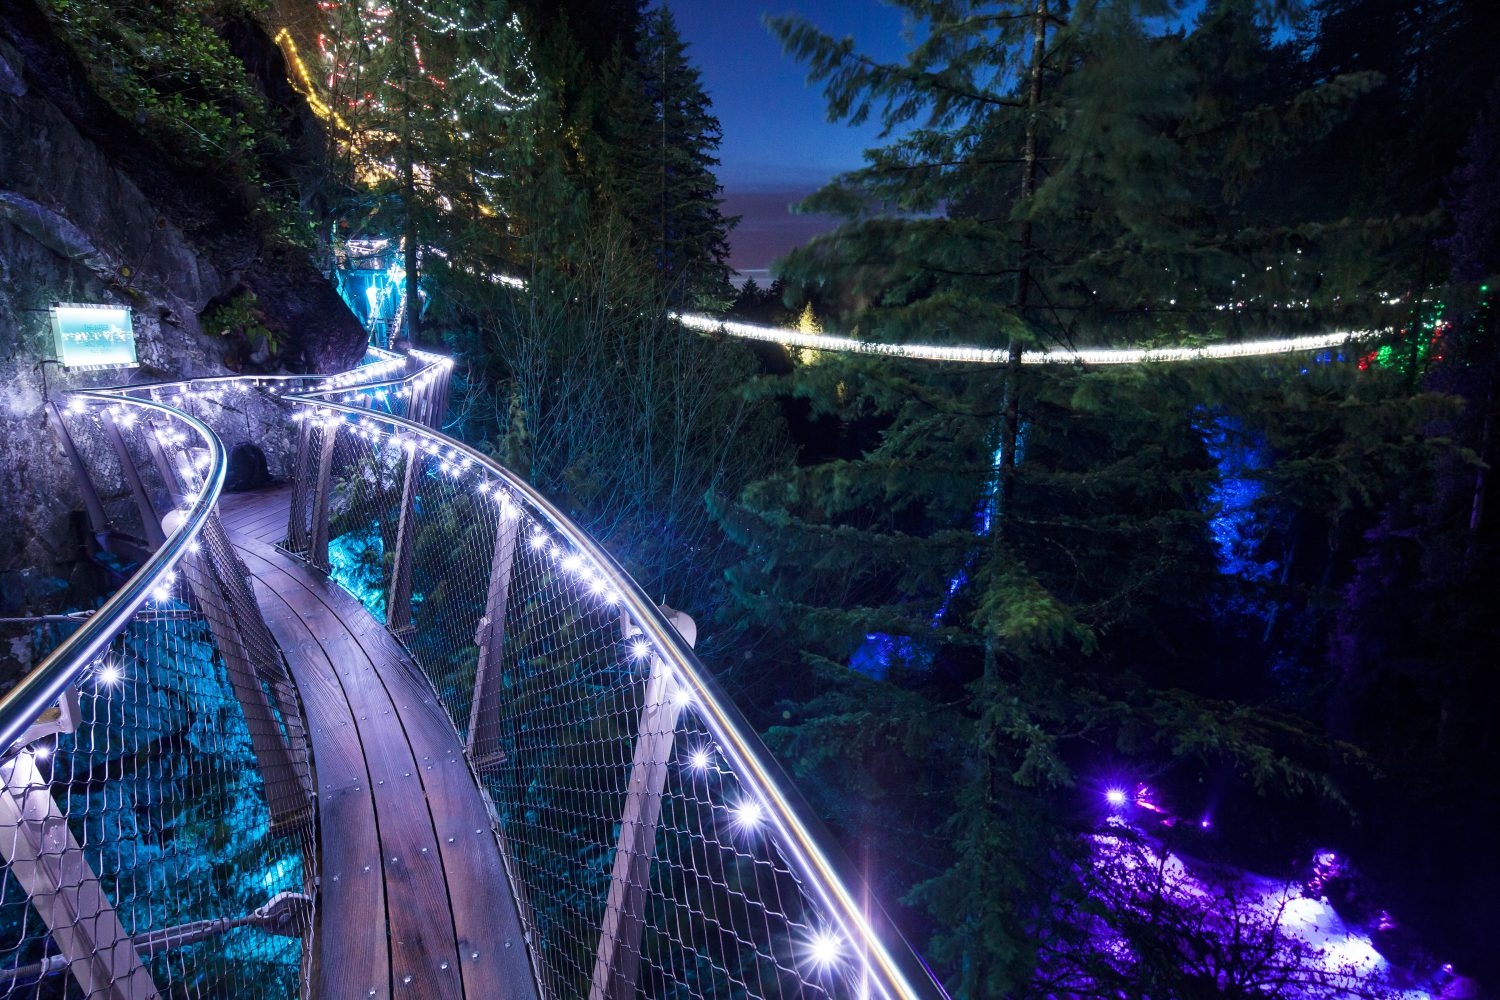 Canyon Lights Cliffwalk - Capilano Bridge - How to spend Holidays in Vancouver